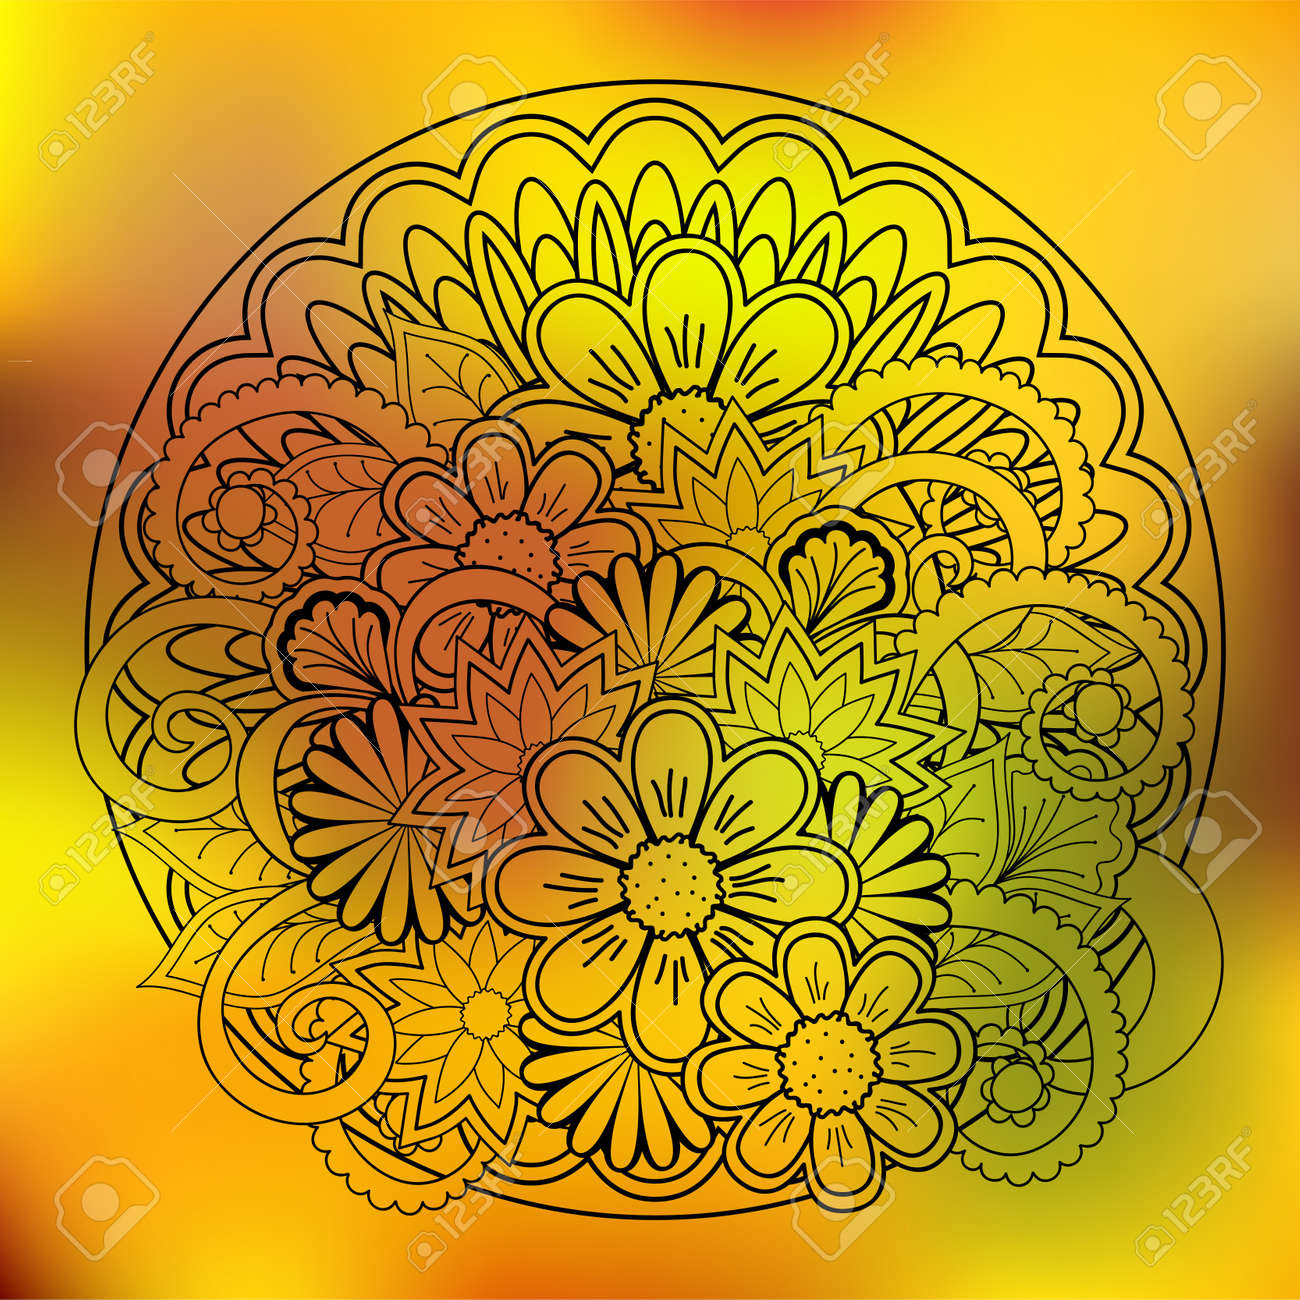 Hand Drawn Transparent Doodle Composition Of The Flowers With ...